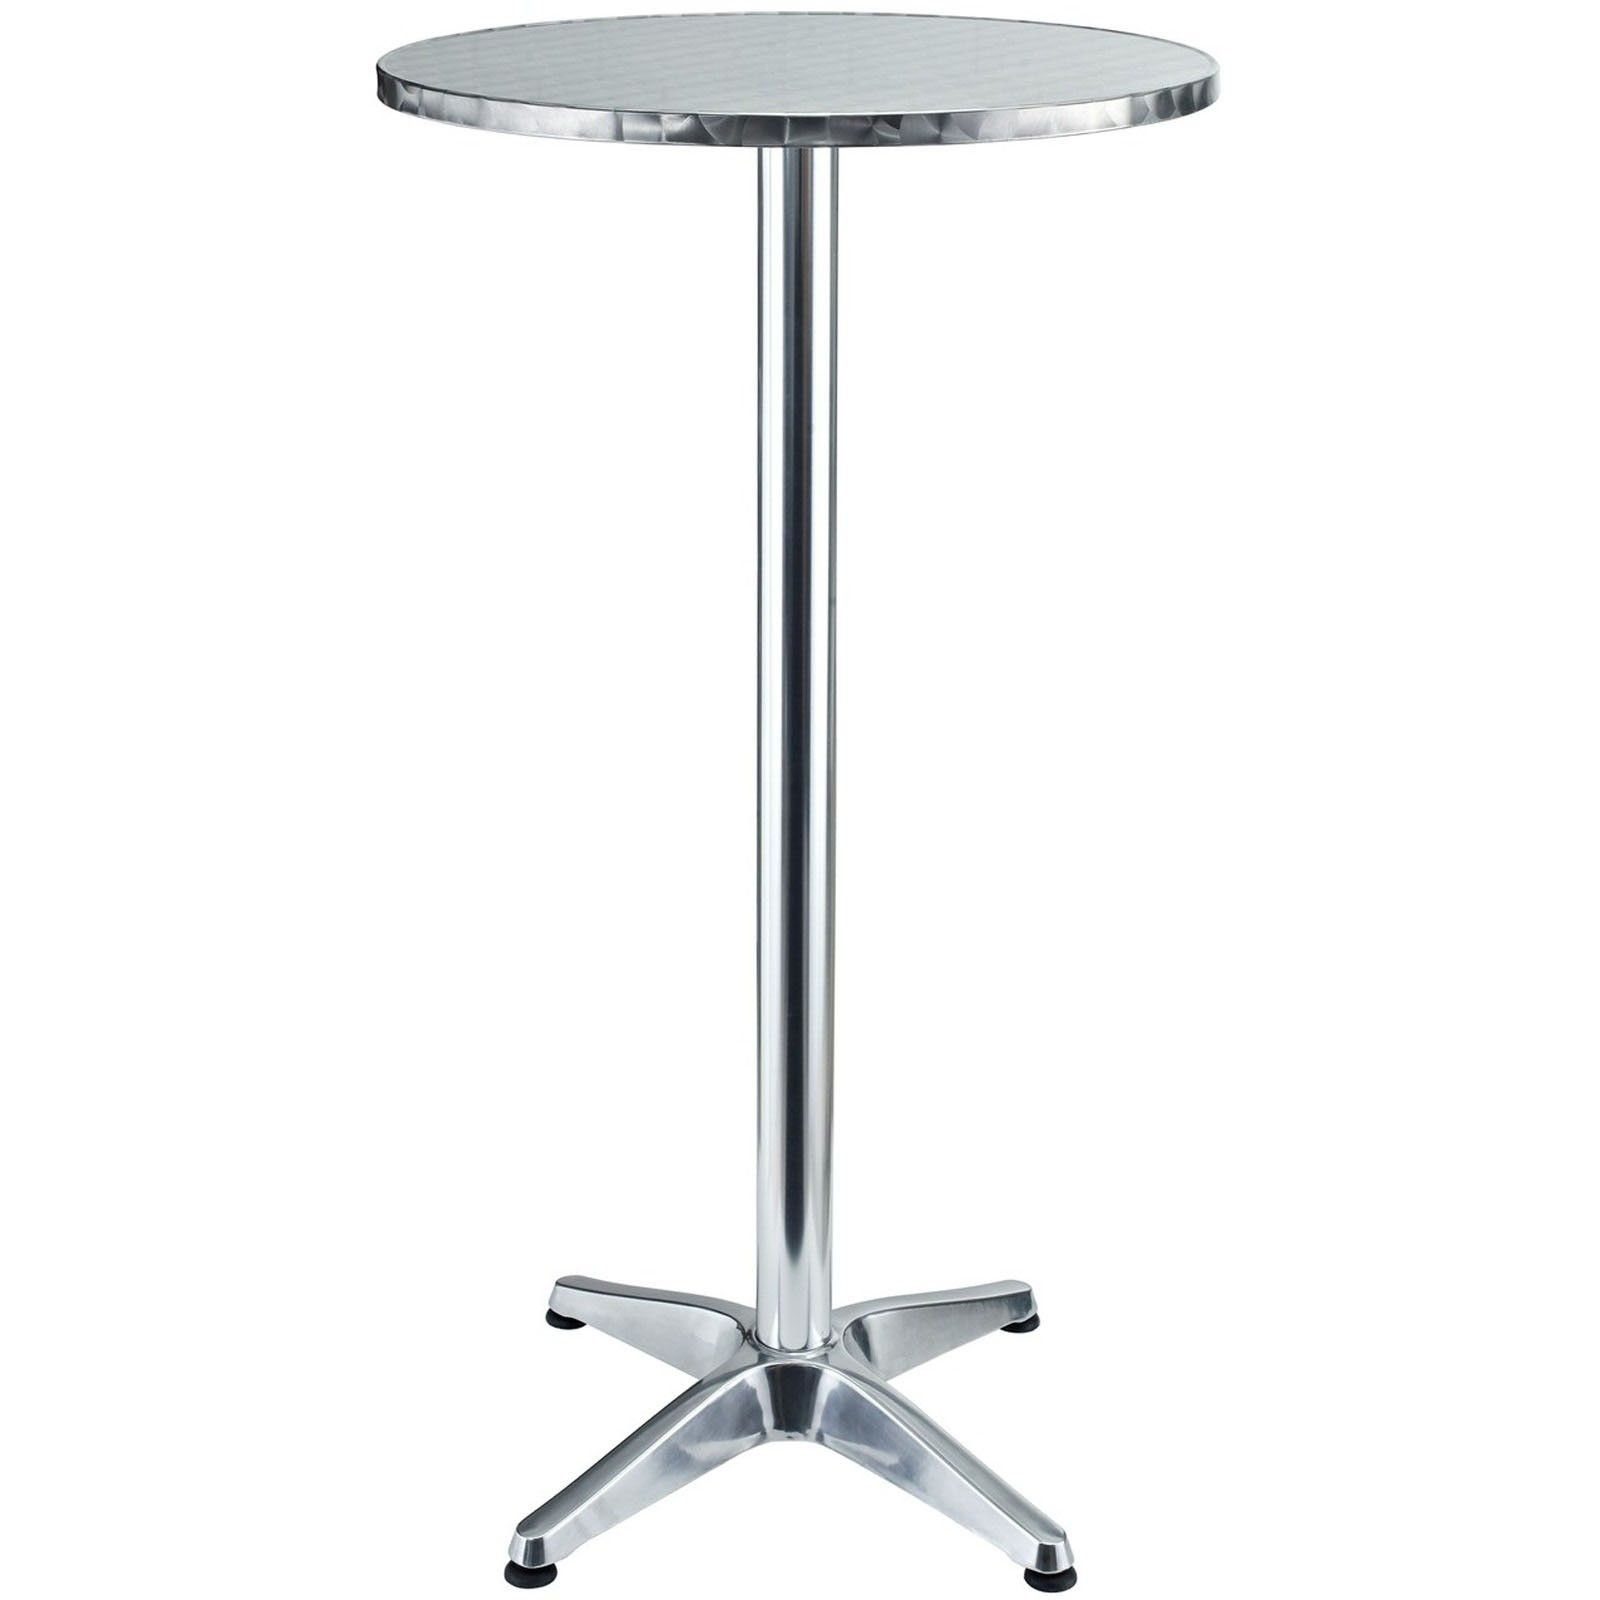 Captivating Bust Of Tall Bar Tables: A Space Saving Dining Furniture For Small Dining  Room